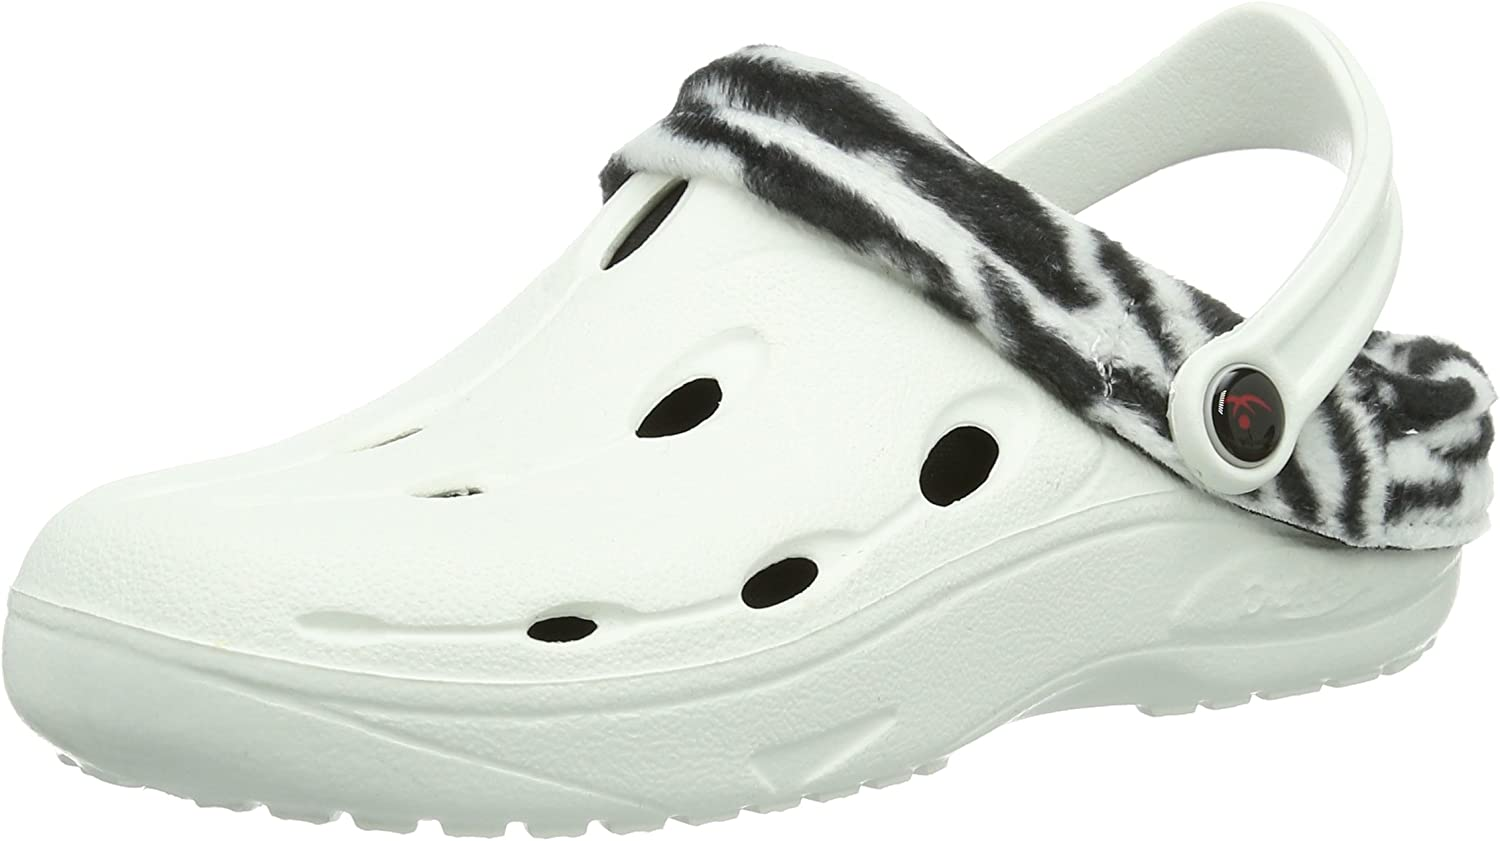 Chung -Shi Dux Winter - Heel comforting, Resilient, Toxin-Free Clog with Warm Lining White